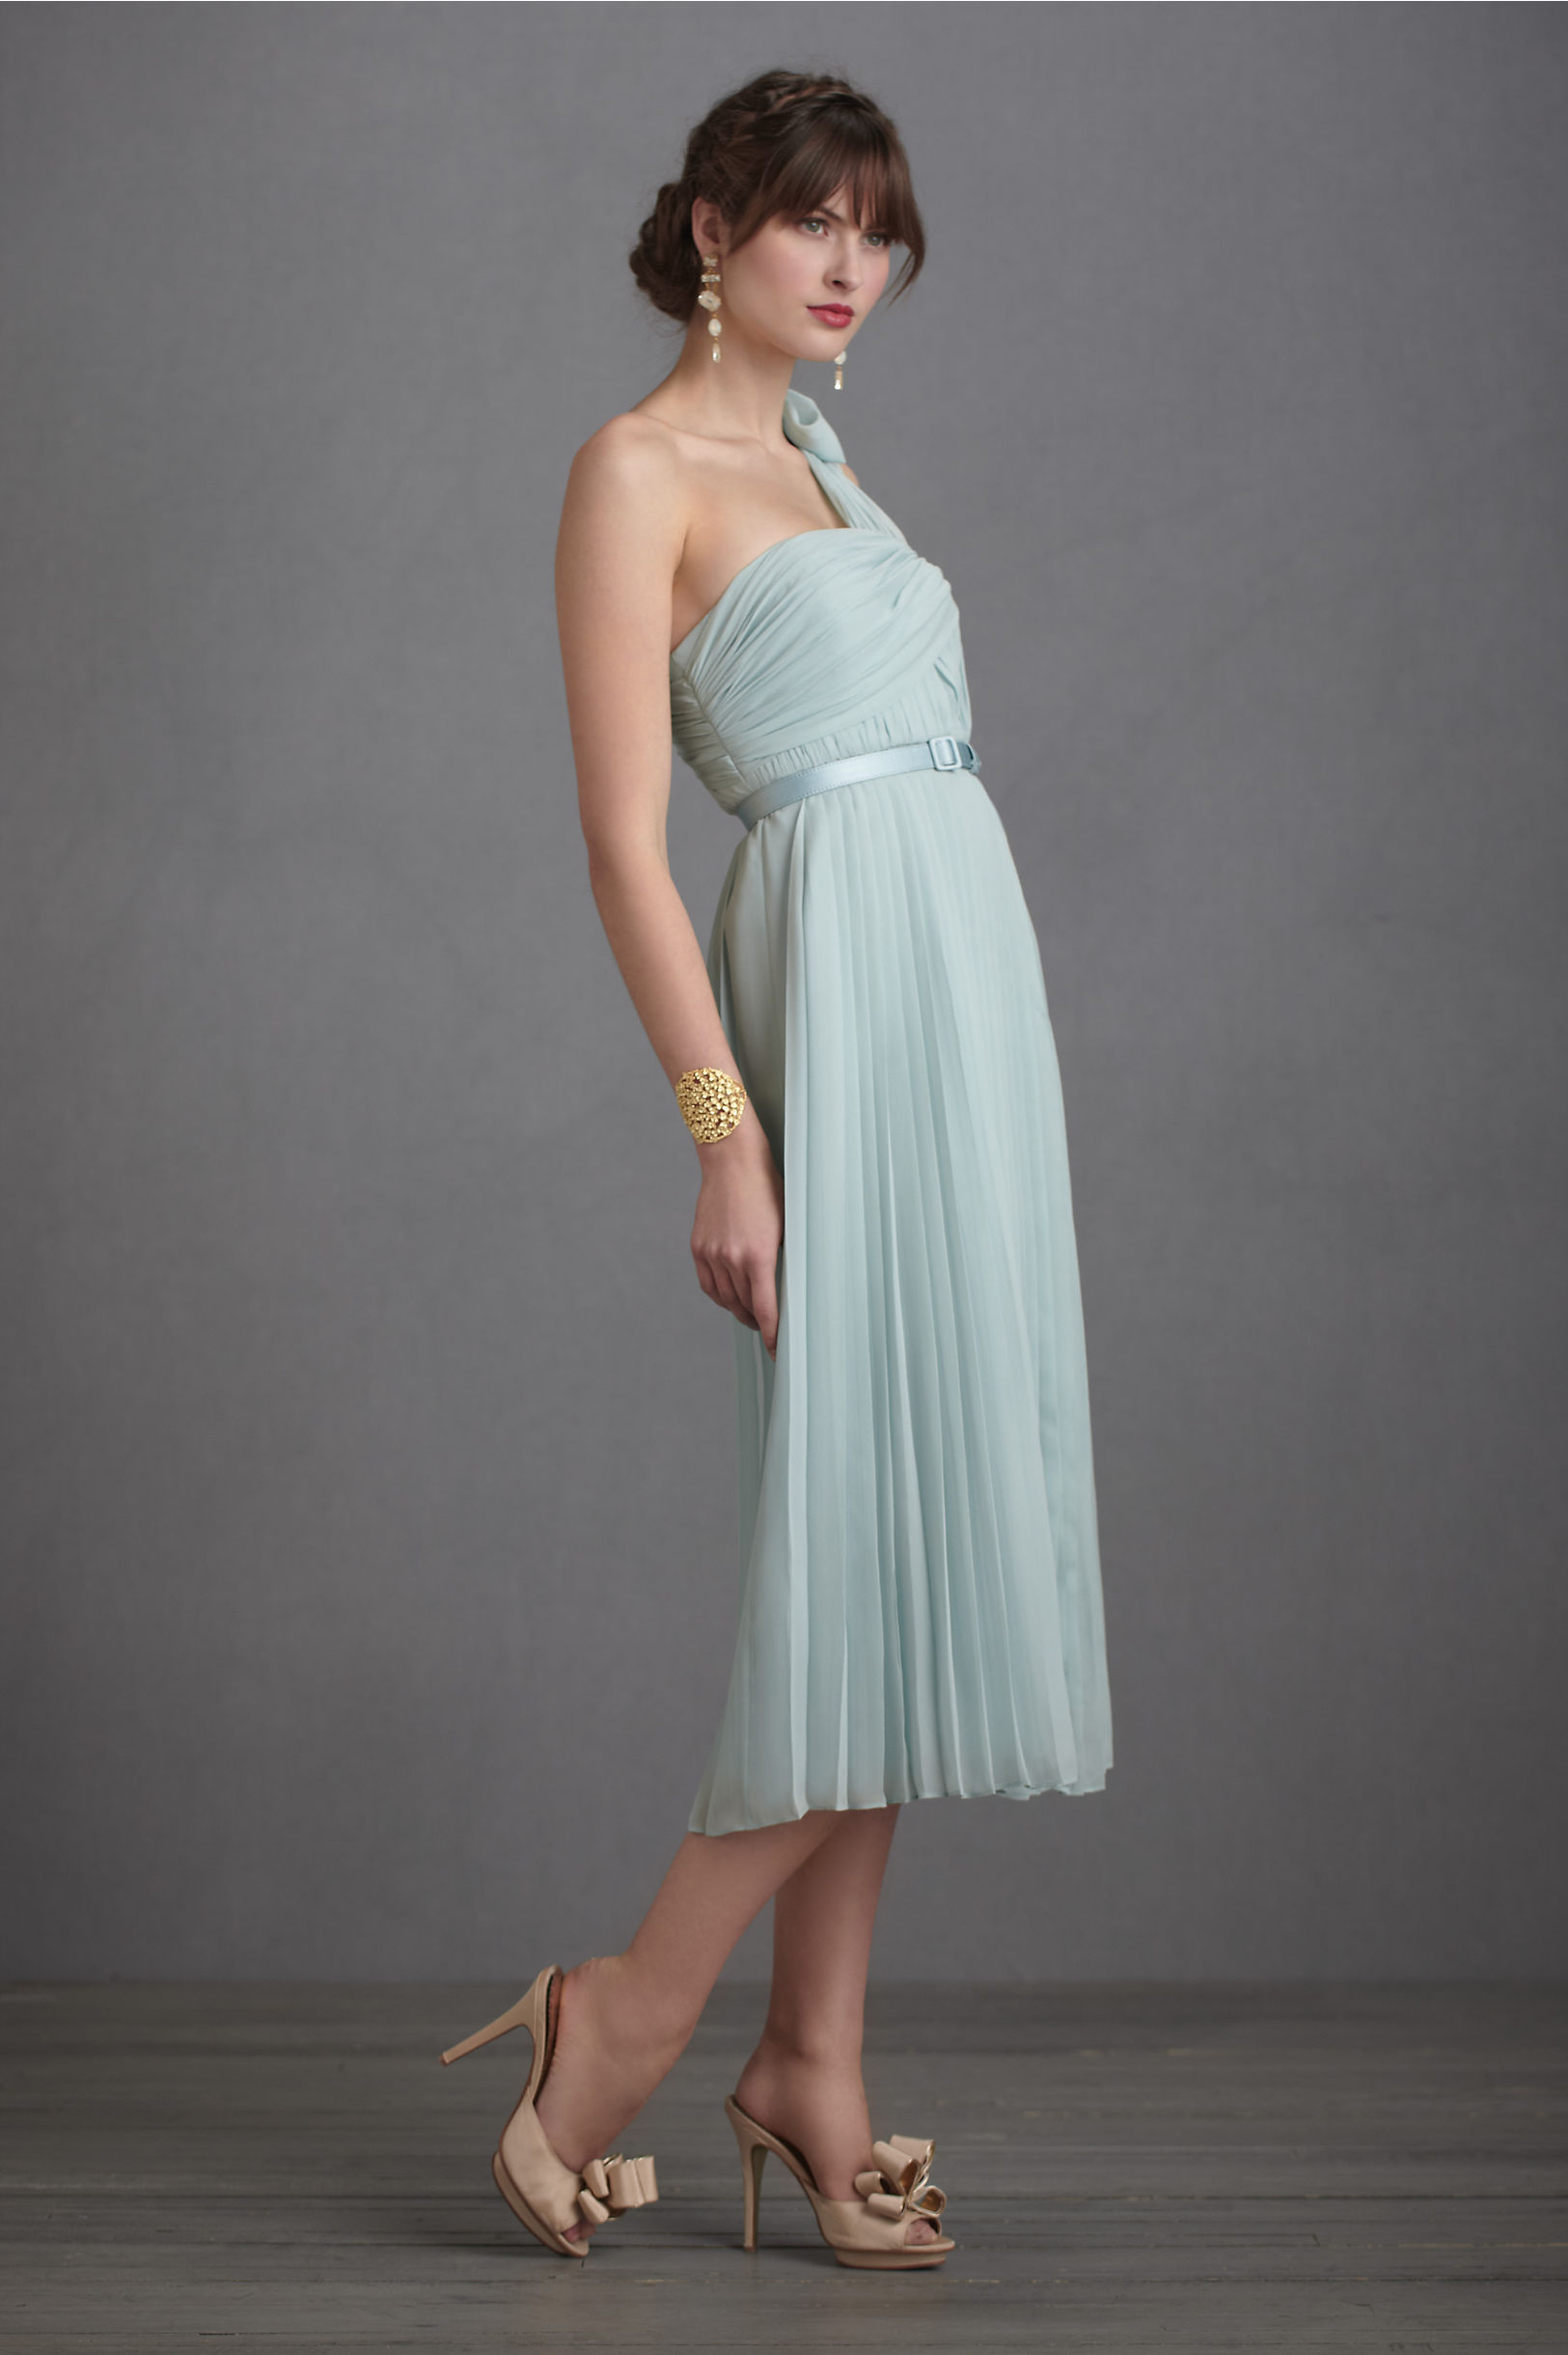 Marchioness Dress in Bridal Party | BHLDN